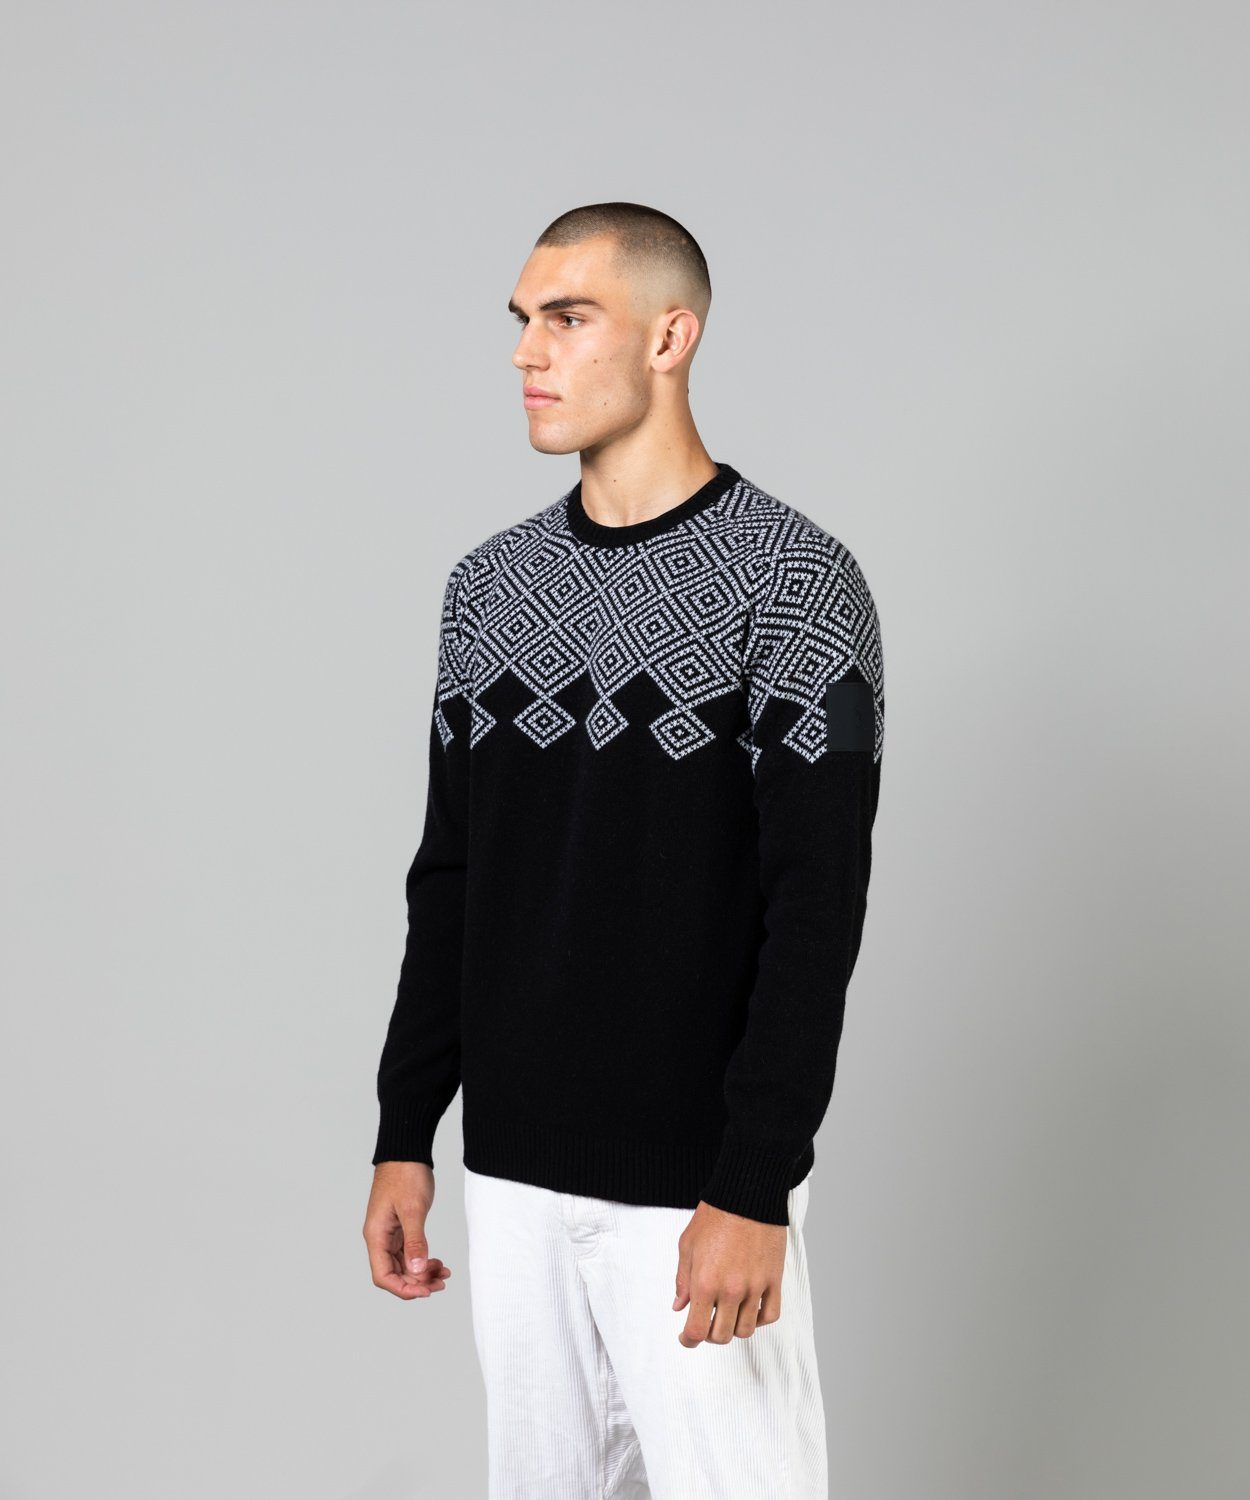 Men's Vernis Jaquard Crew Knit Sweaters | Knitwear Peak Performance